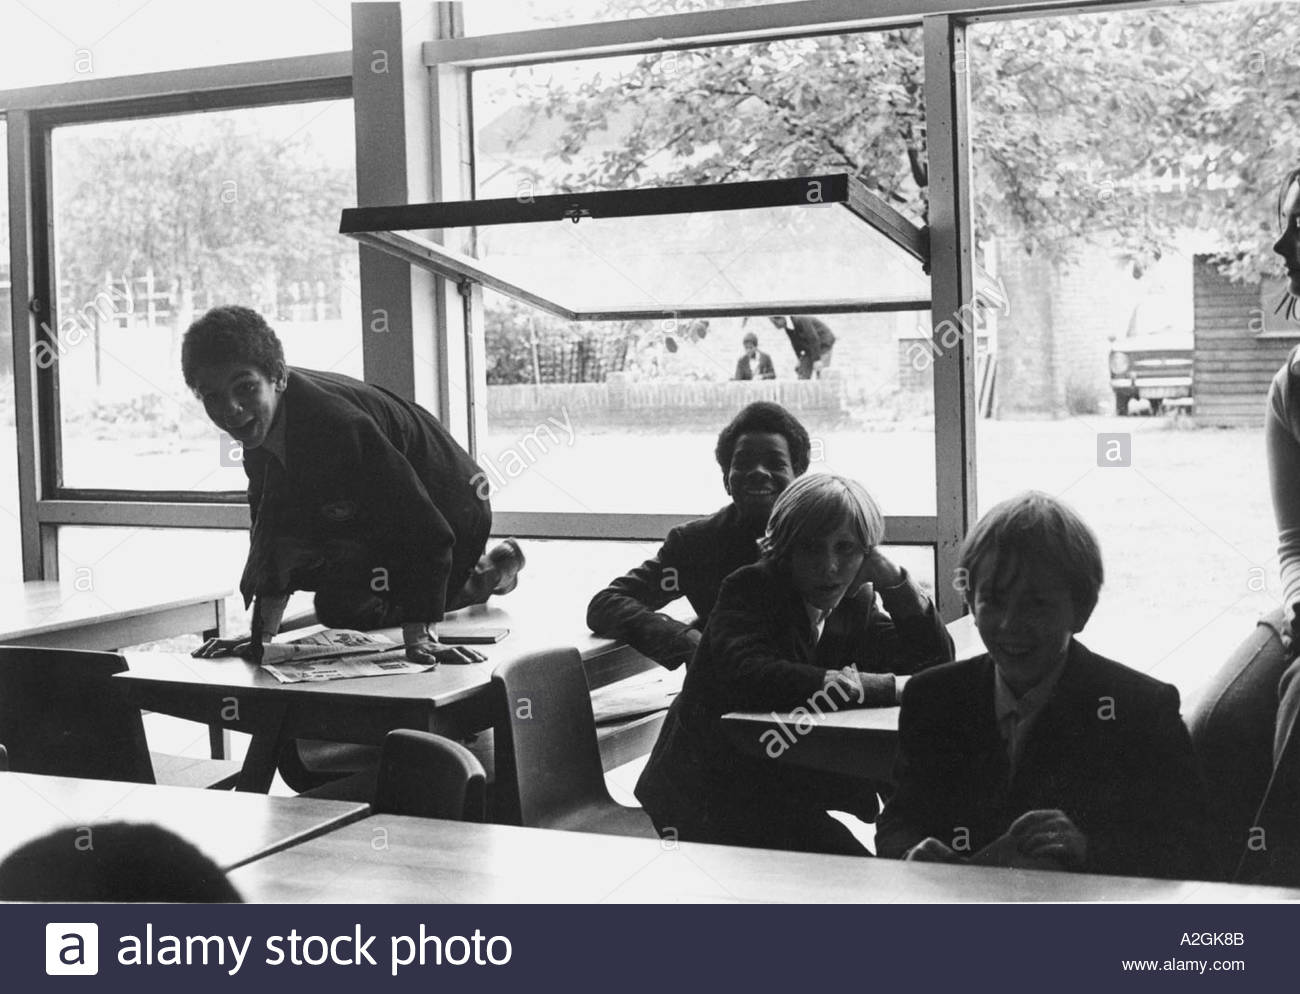 Secondary school children creating chaos in the classroom - Stock Image